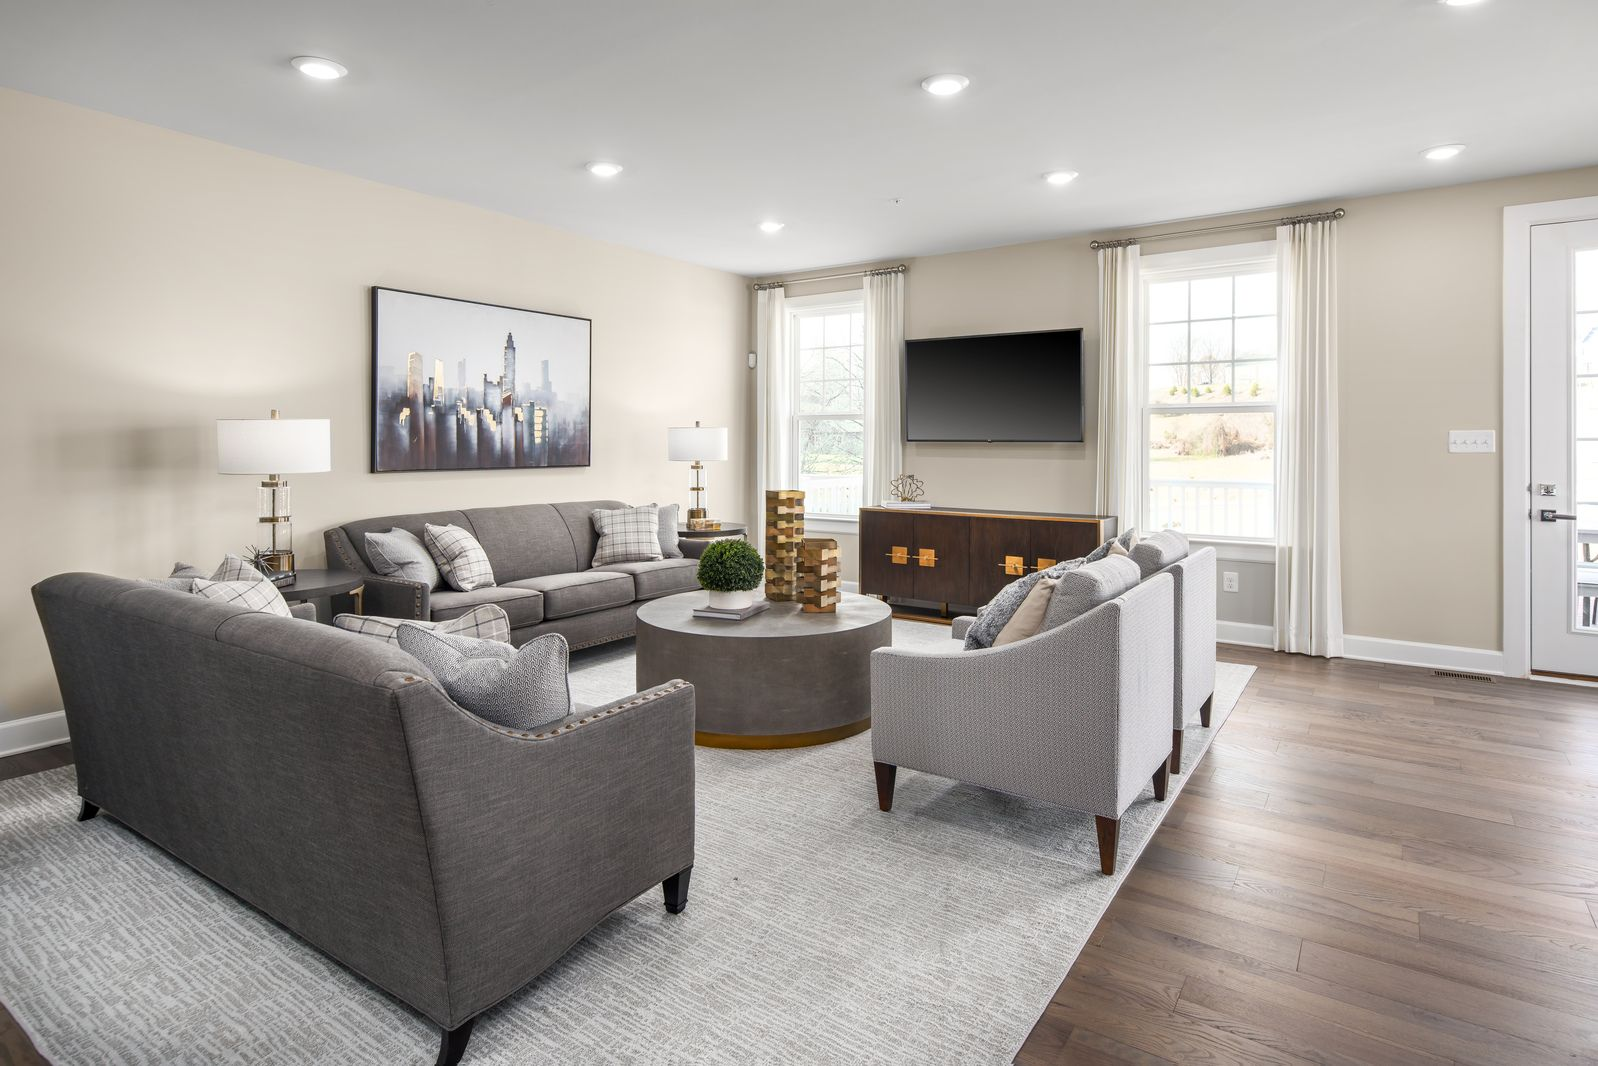 Living Area featured in the Northshire By HeartlandHomes in Pittsburgh, PA